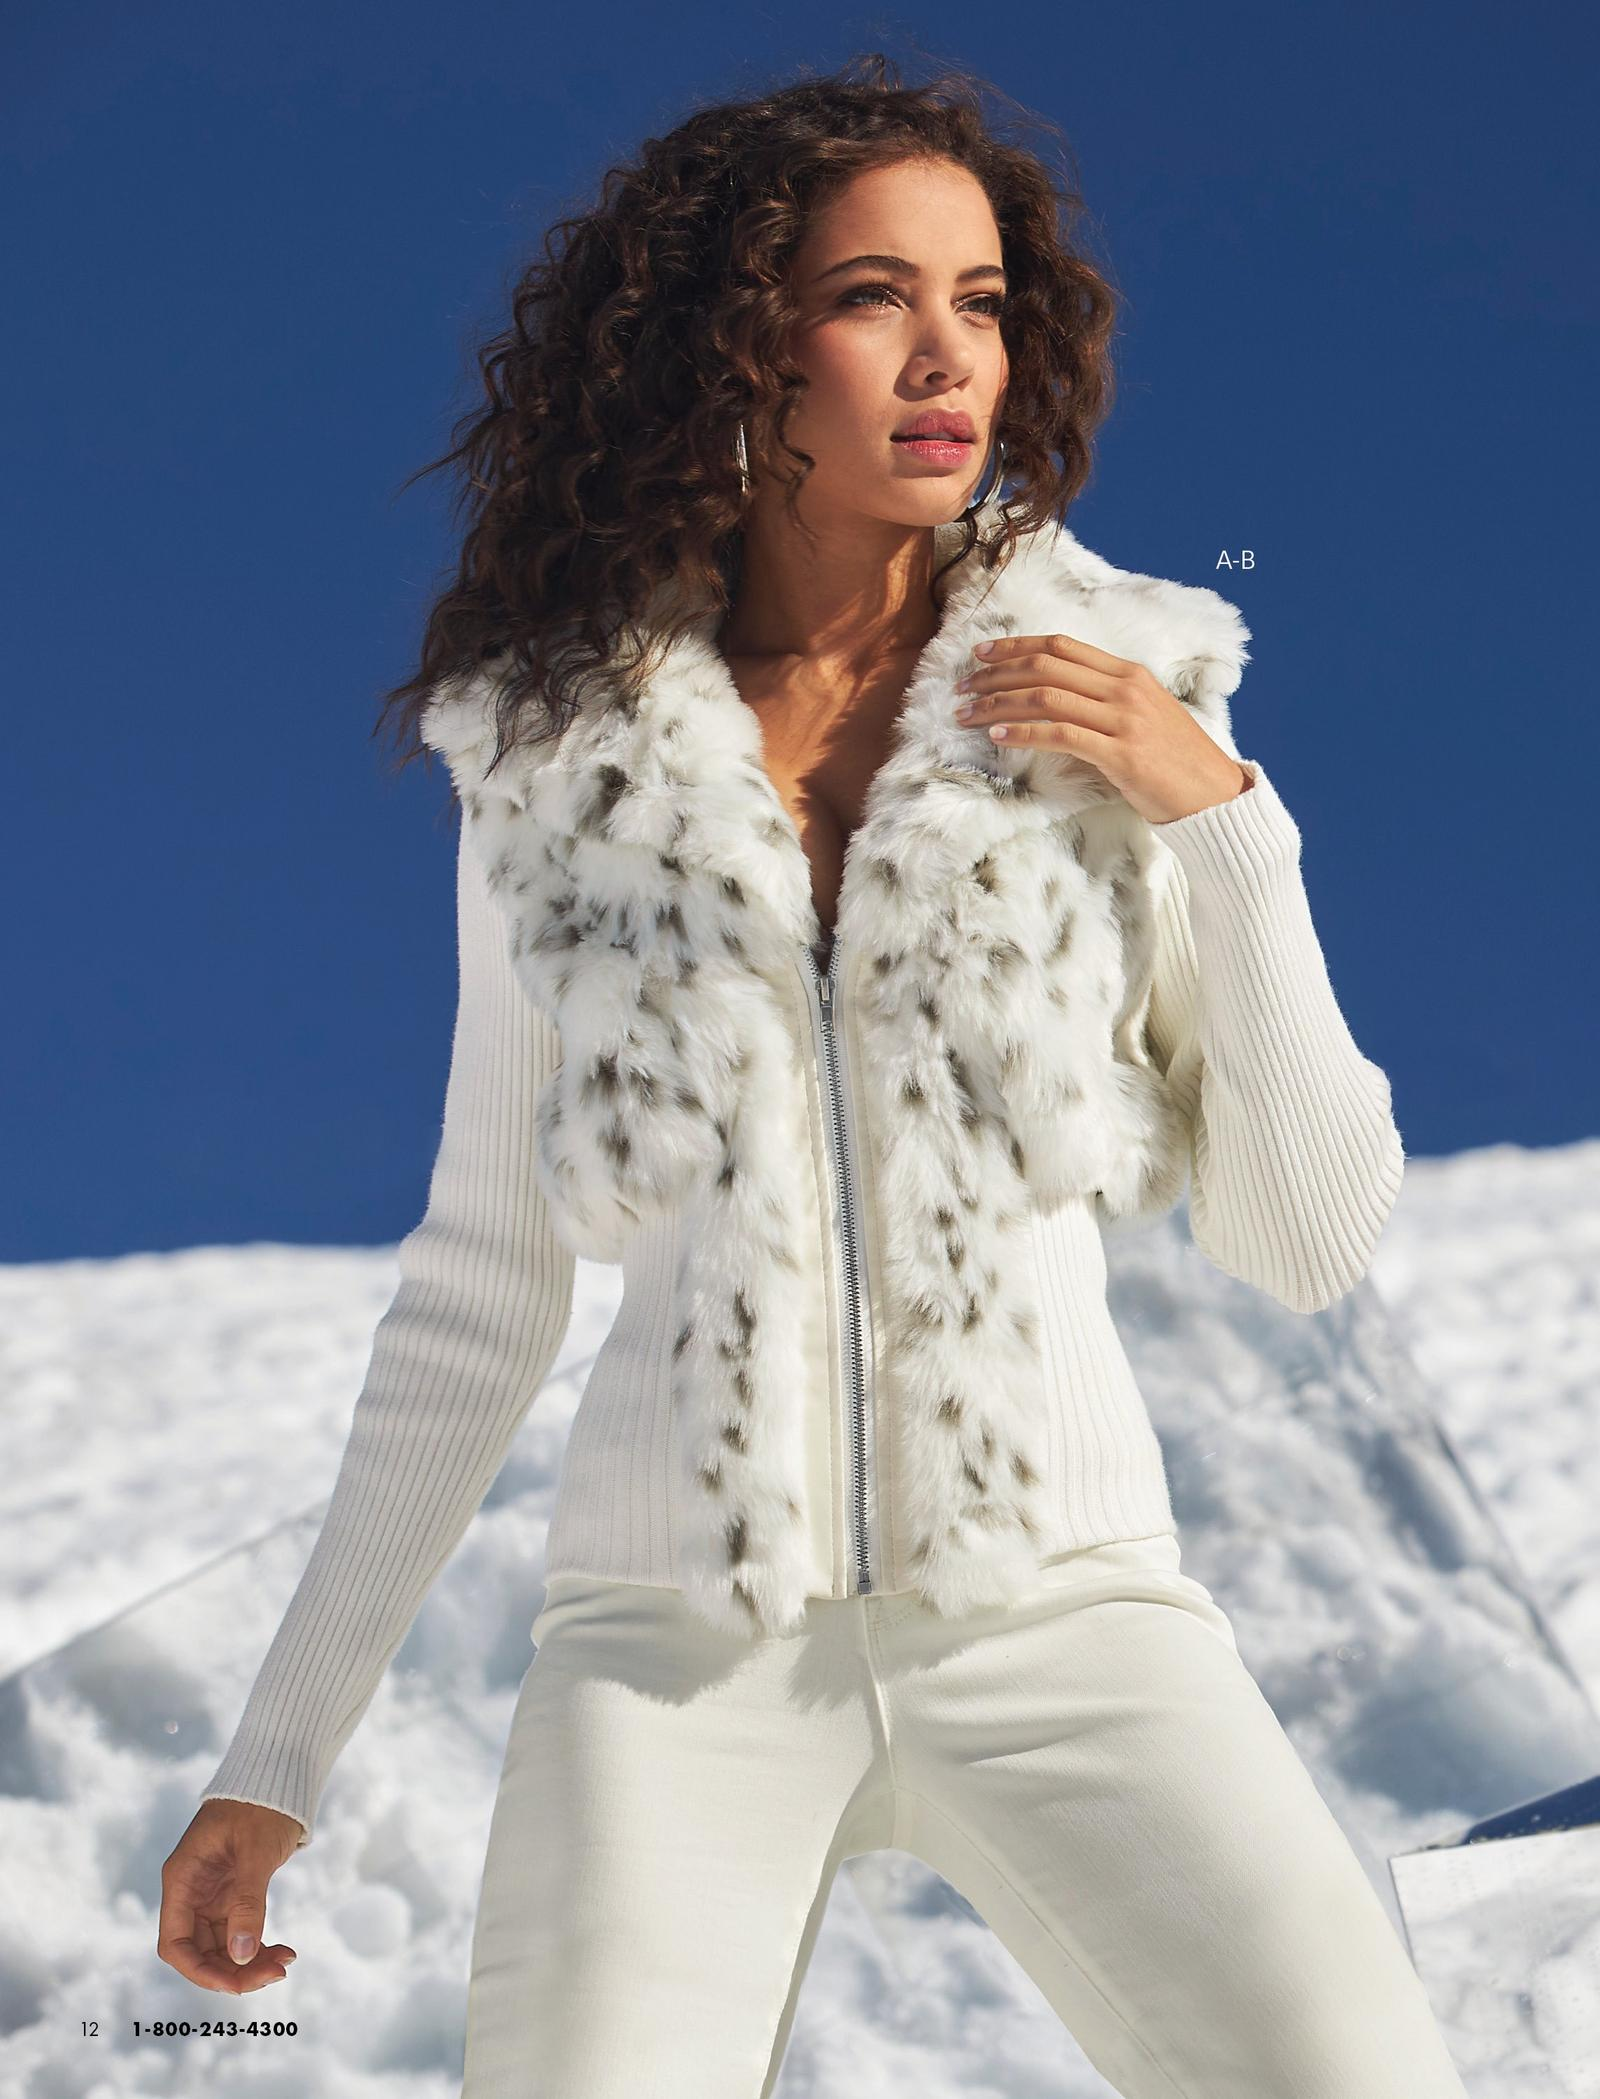 model wearing a white ribbed cardigan with snow leopard faux-fur and white bootcut jeans.